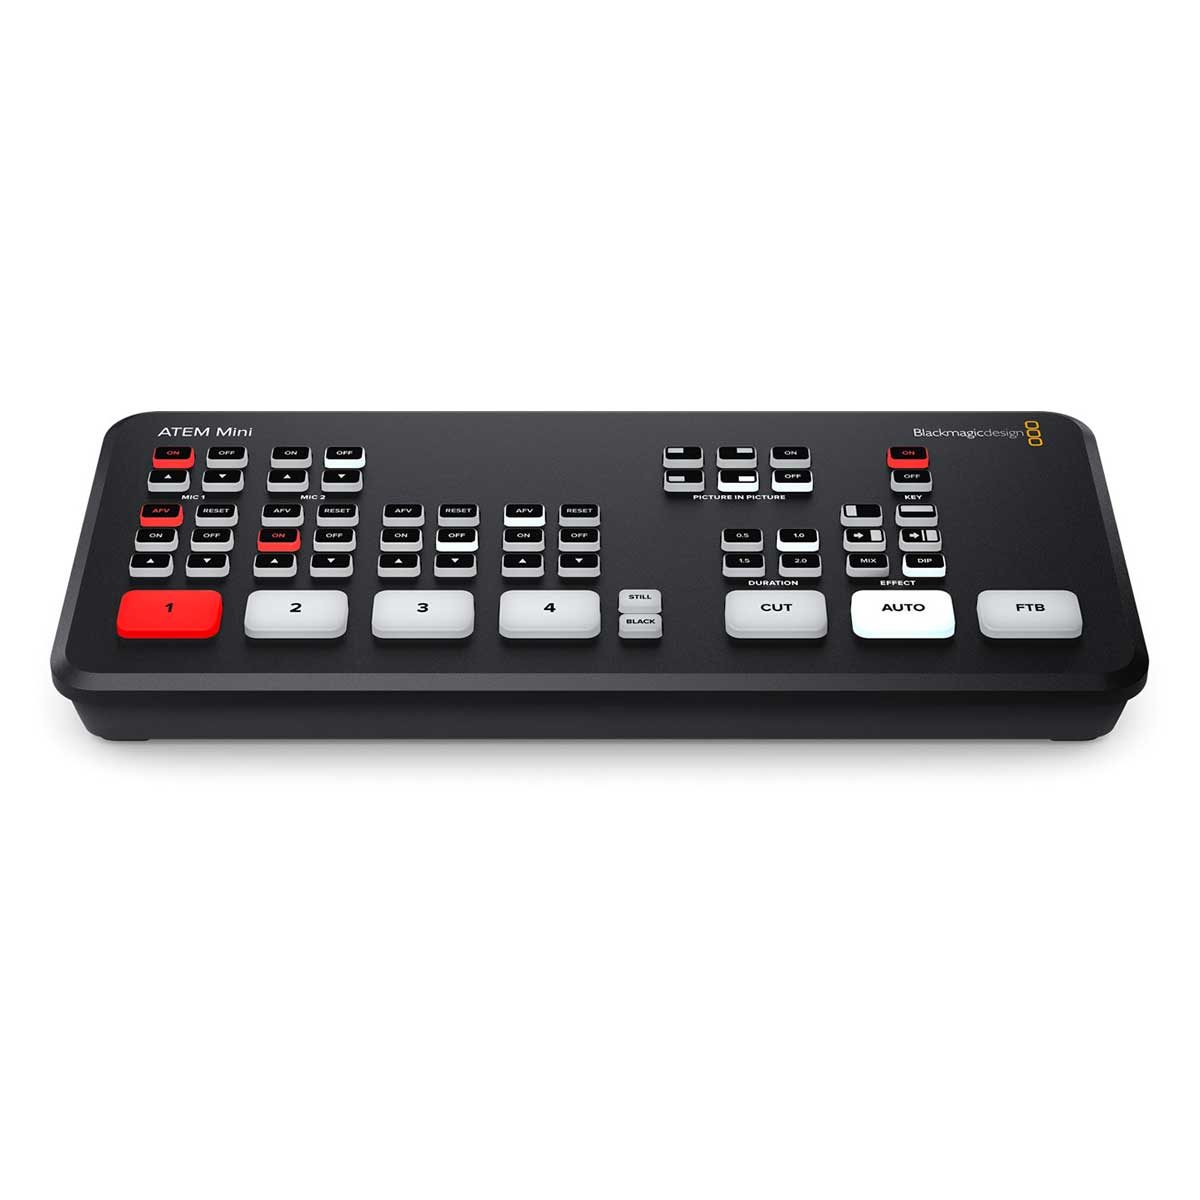 Blackmagic Design ATEM Mini Video Switcher for Live Streaming